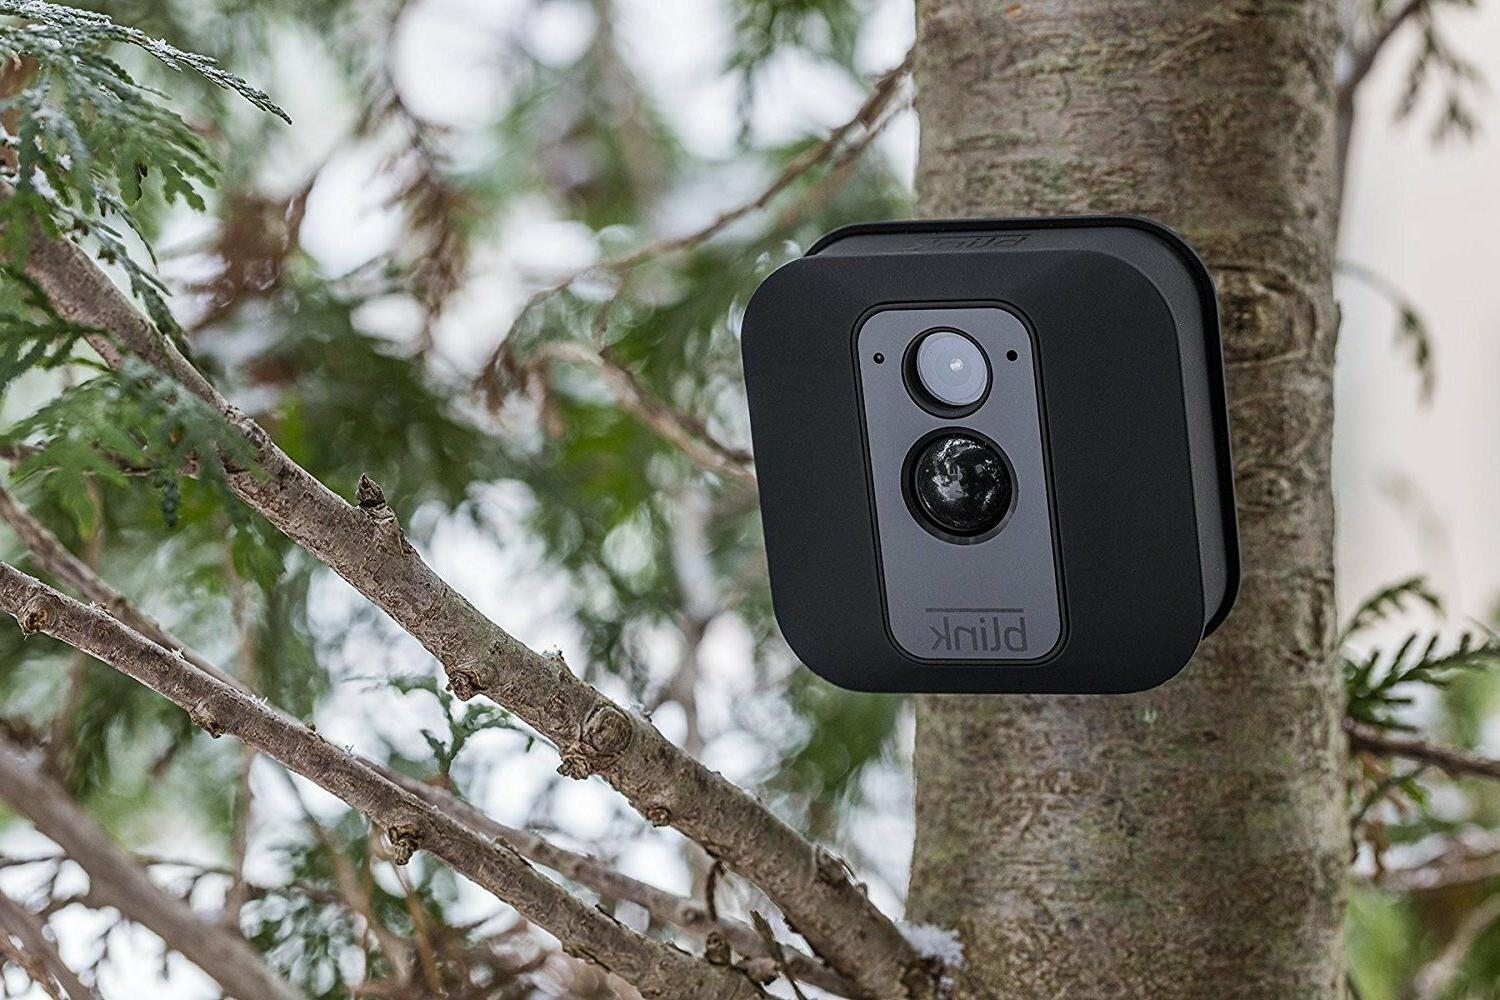 Blink Xt Camera System With Detection, Mount, Hd Video